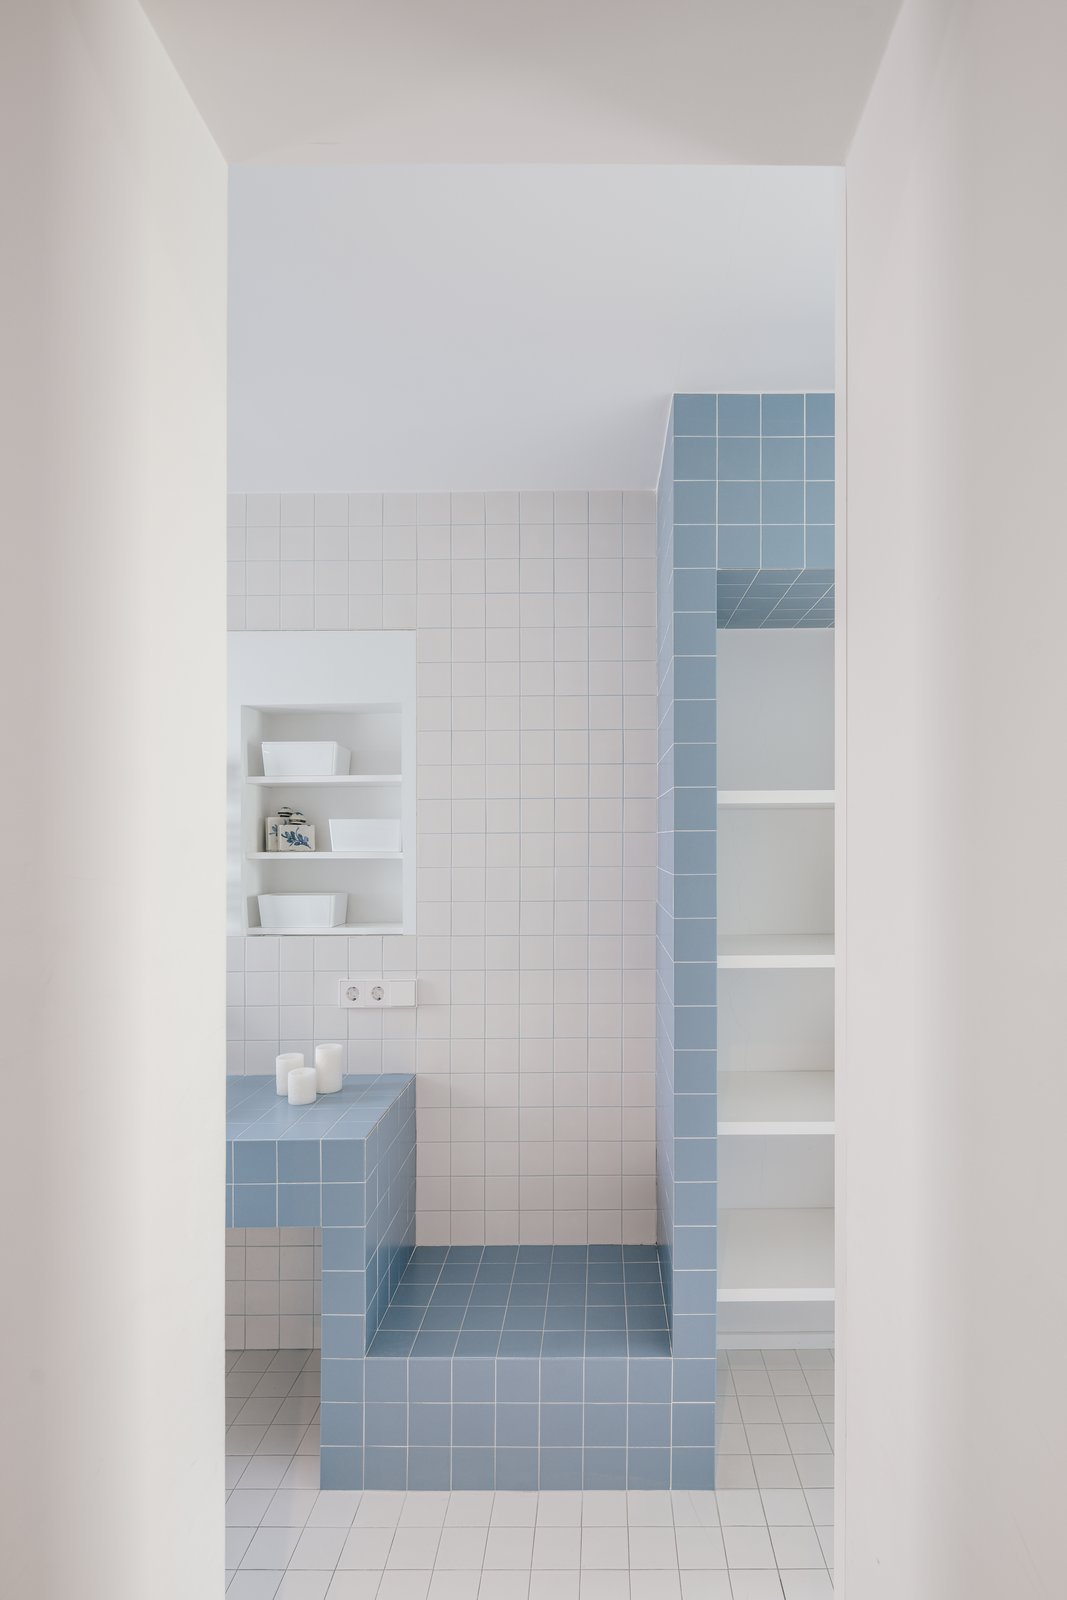 6House by Zooco Estudio bathroom with baby blue and white ceramic tiles